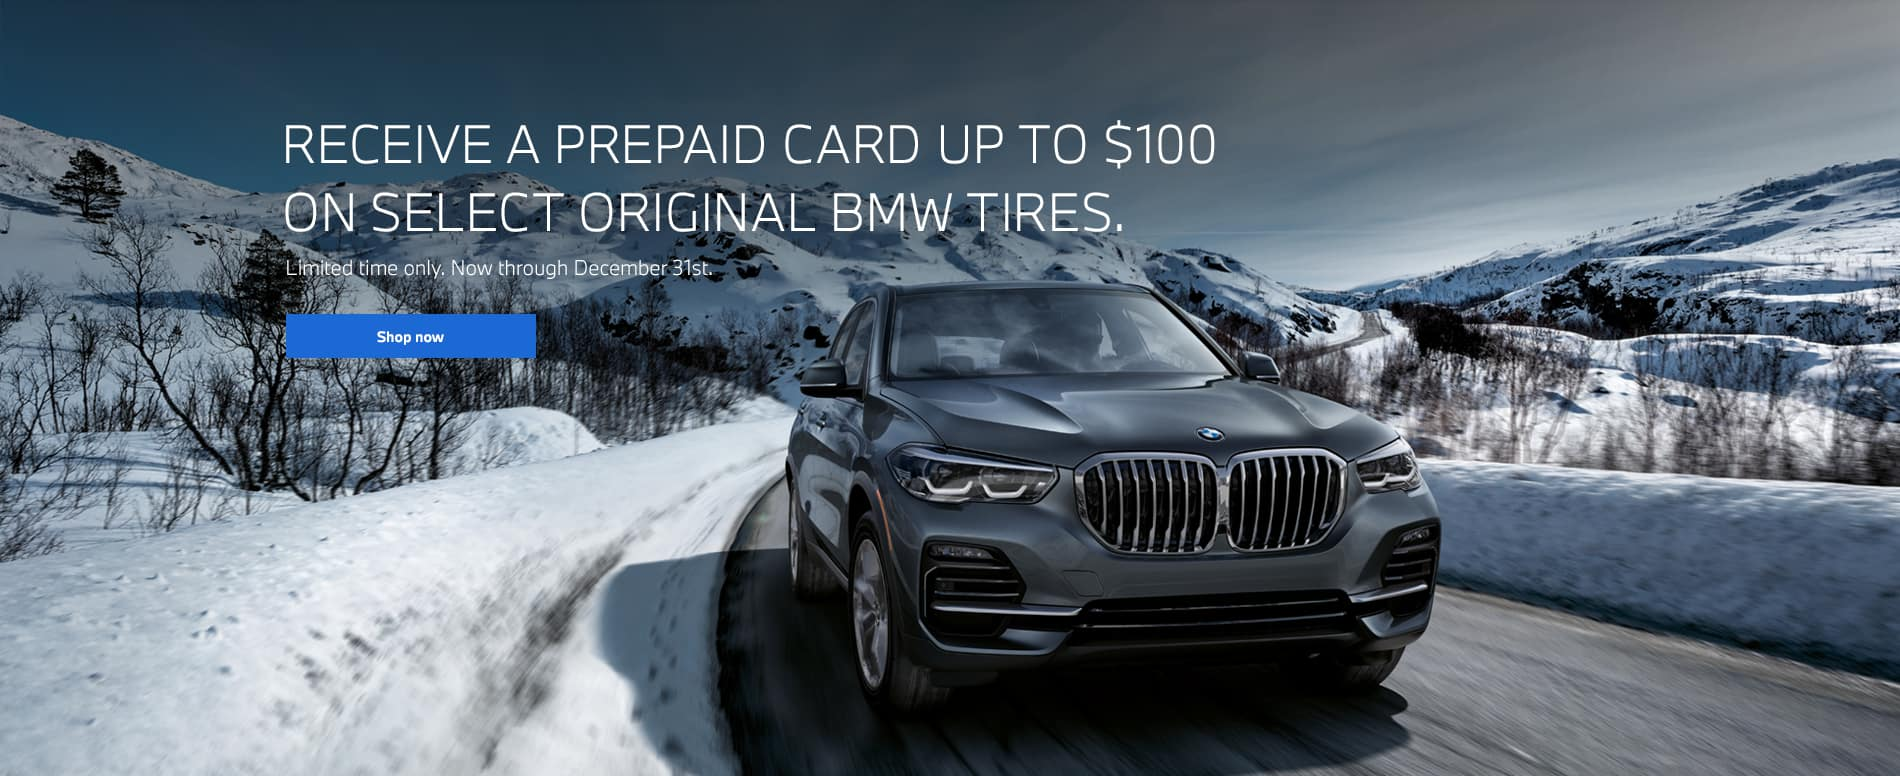 $100 Visa Mail In Gift Card with Purchase of 4 Tires.